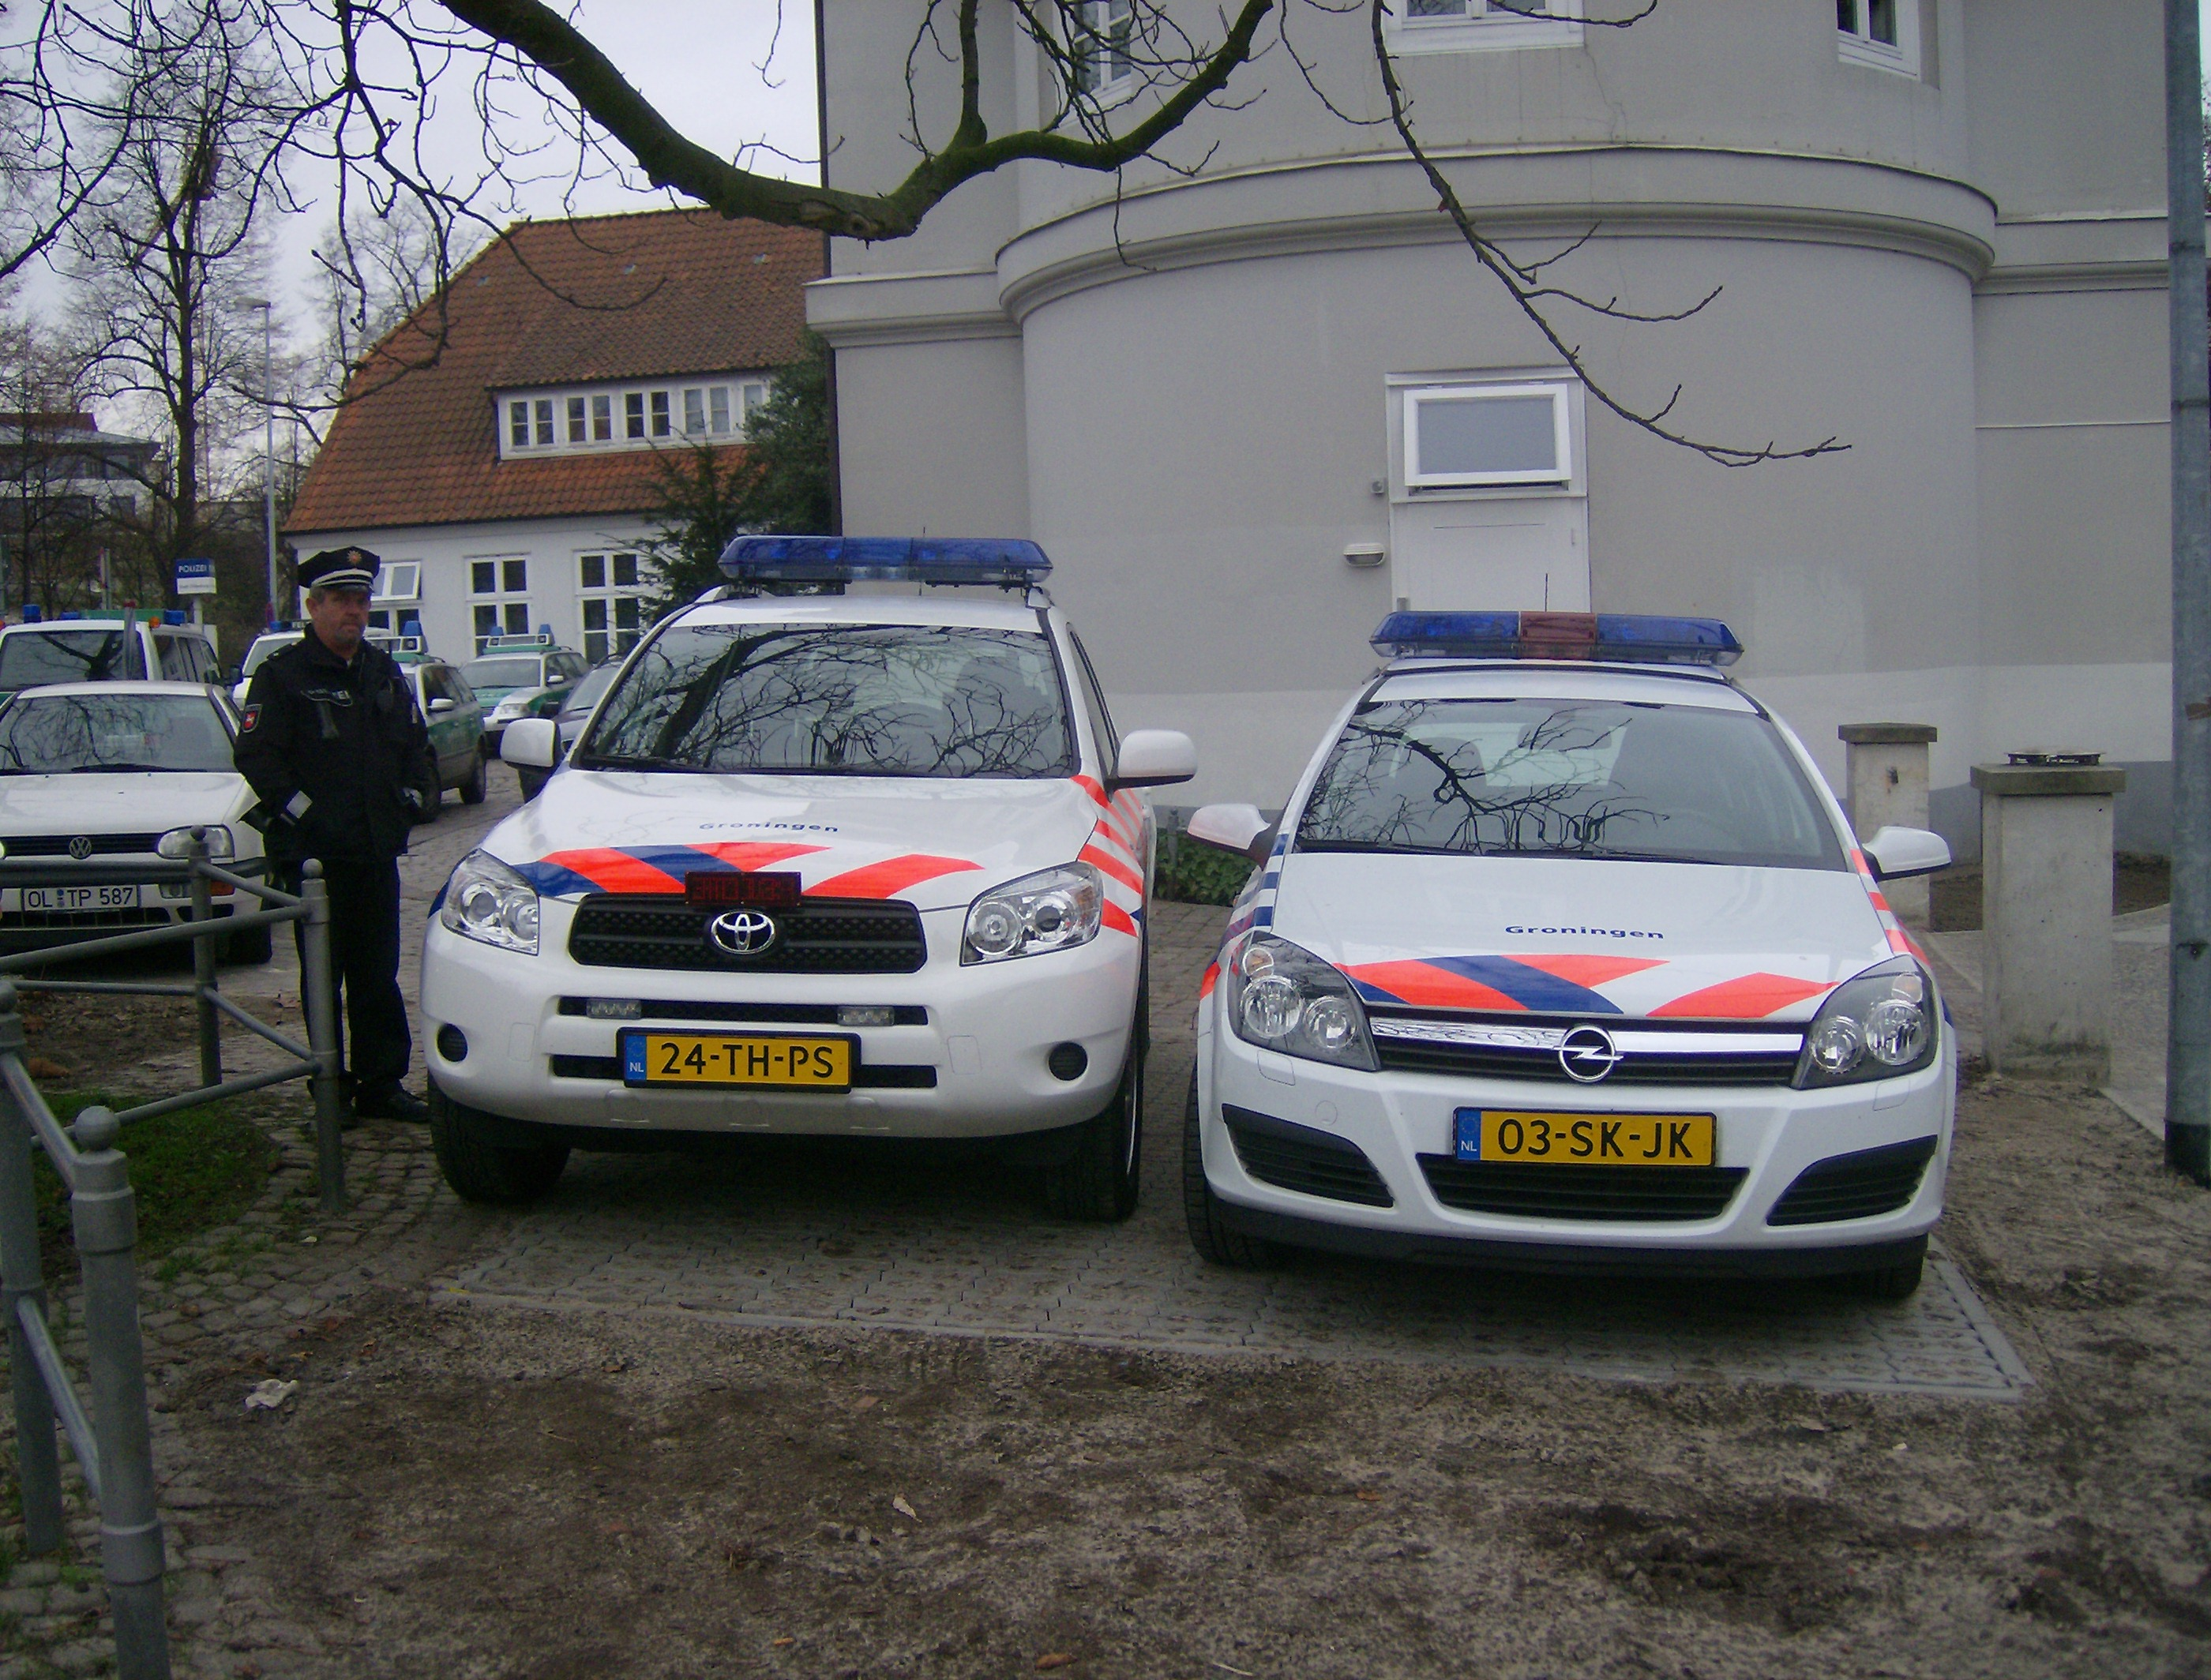 File Police Car The Netherlands Toyota Rav 4 And Opel Jpg